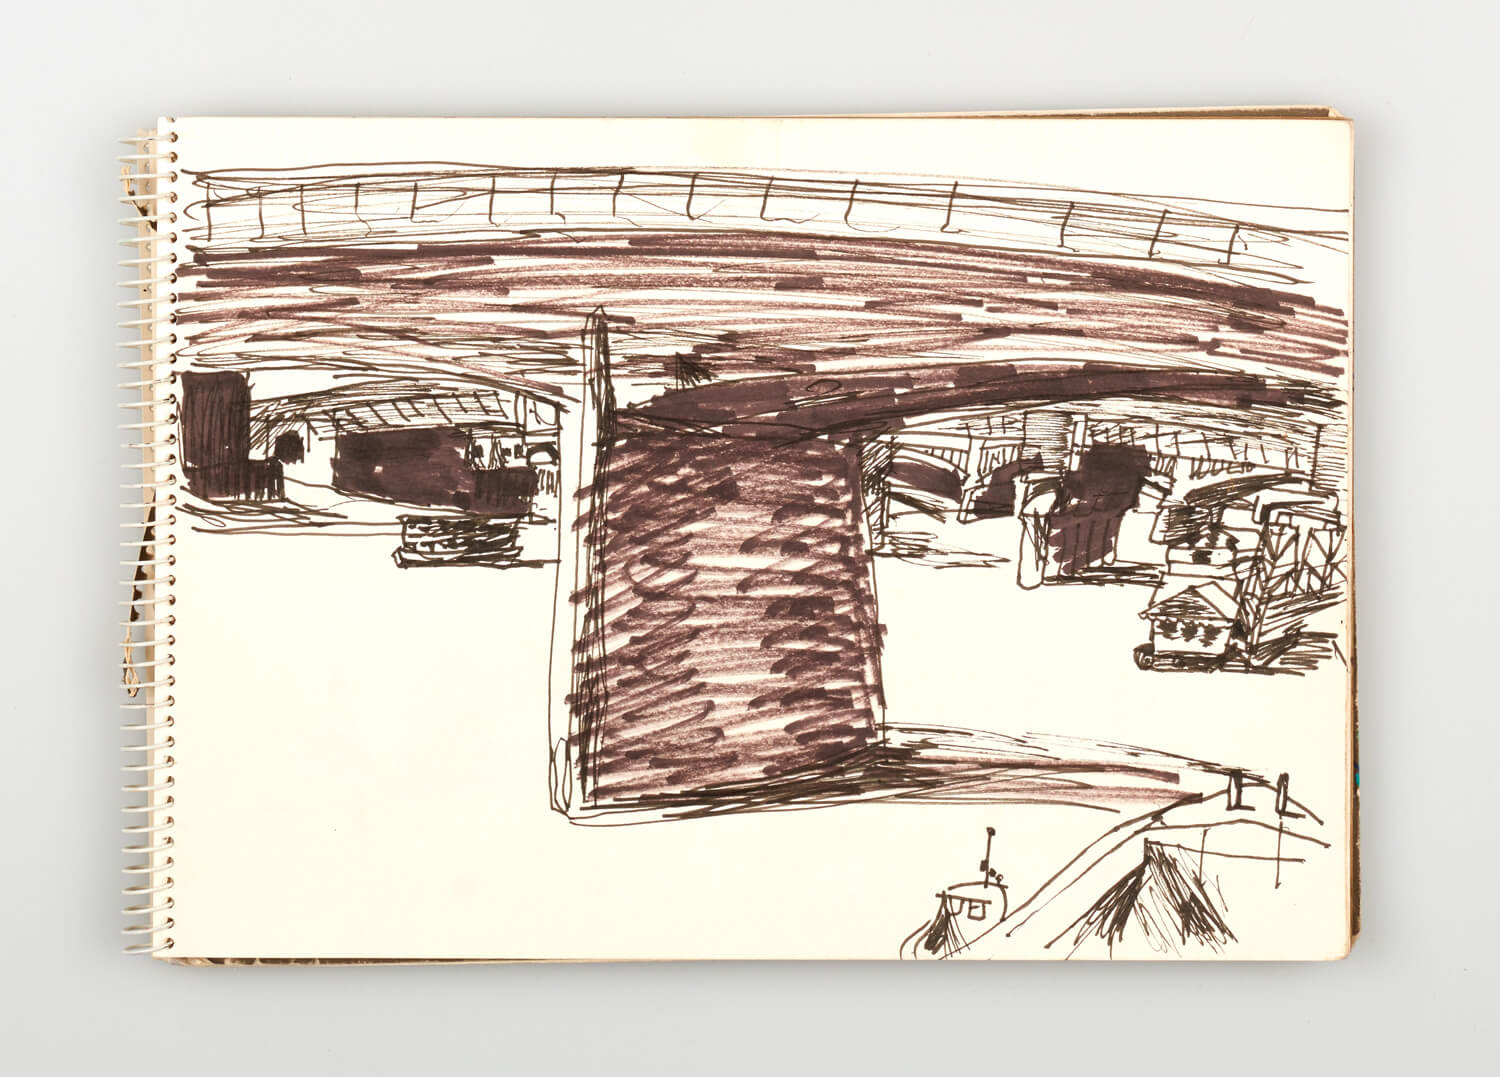 JB223 - Sketch for Bridges on the River Thames - 1992 - 21 x 30 cm - Pen and Ink on cartridge paper